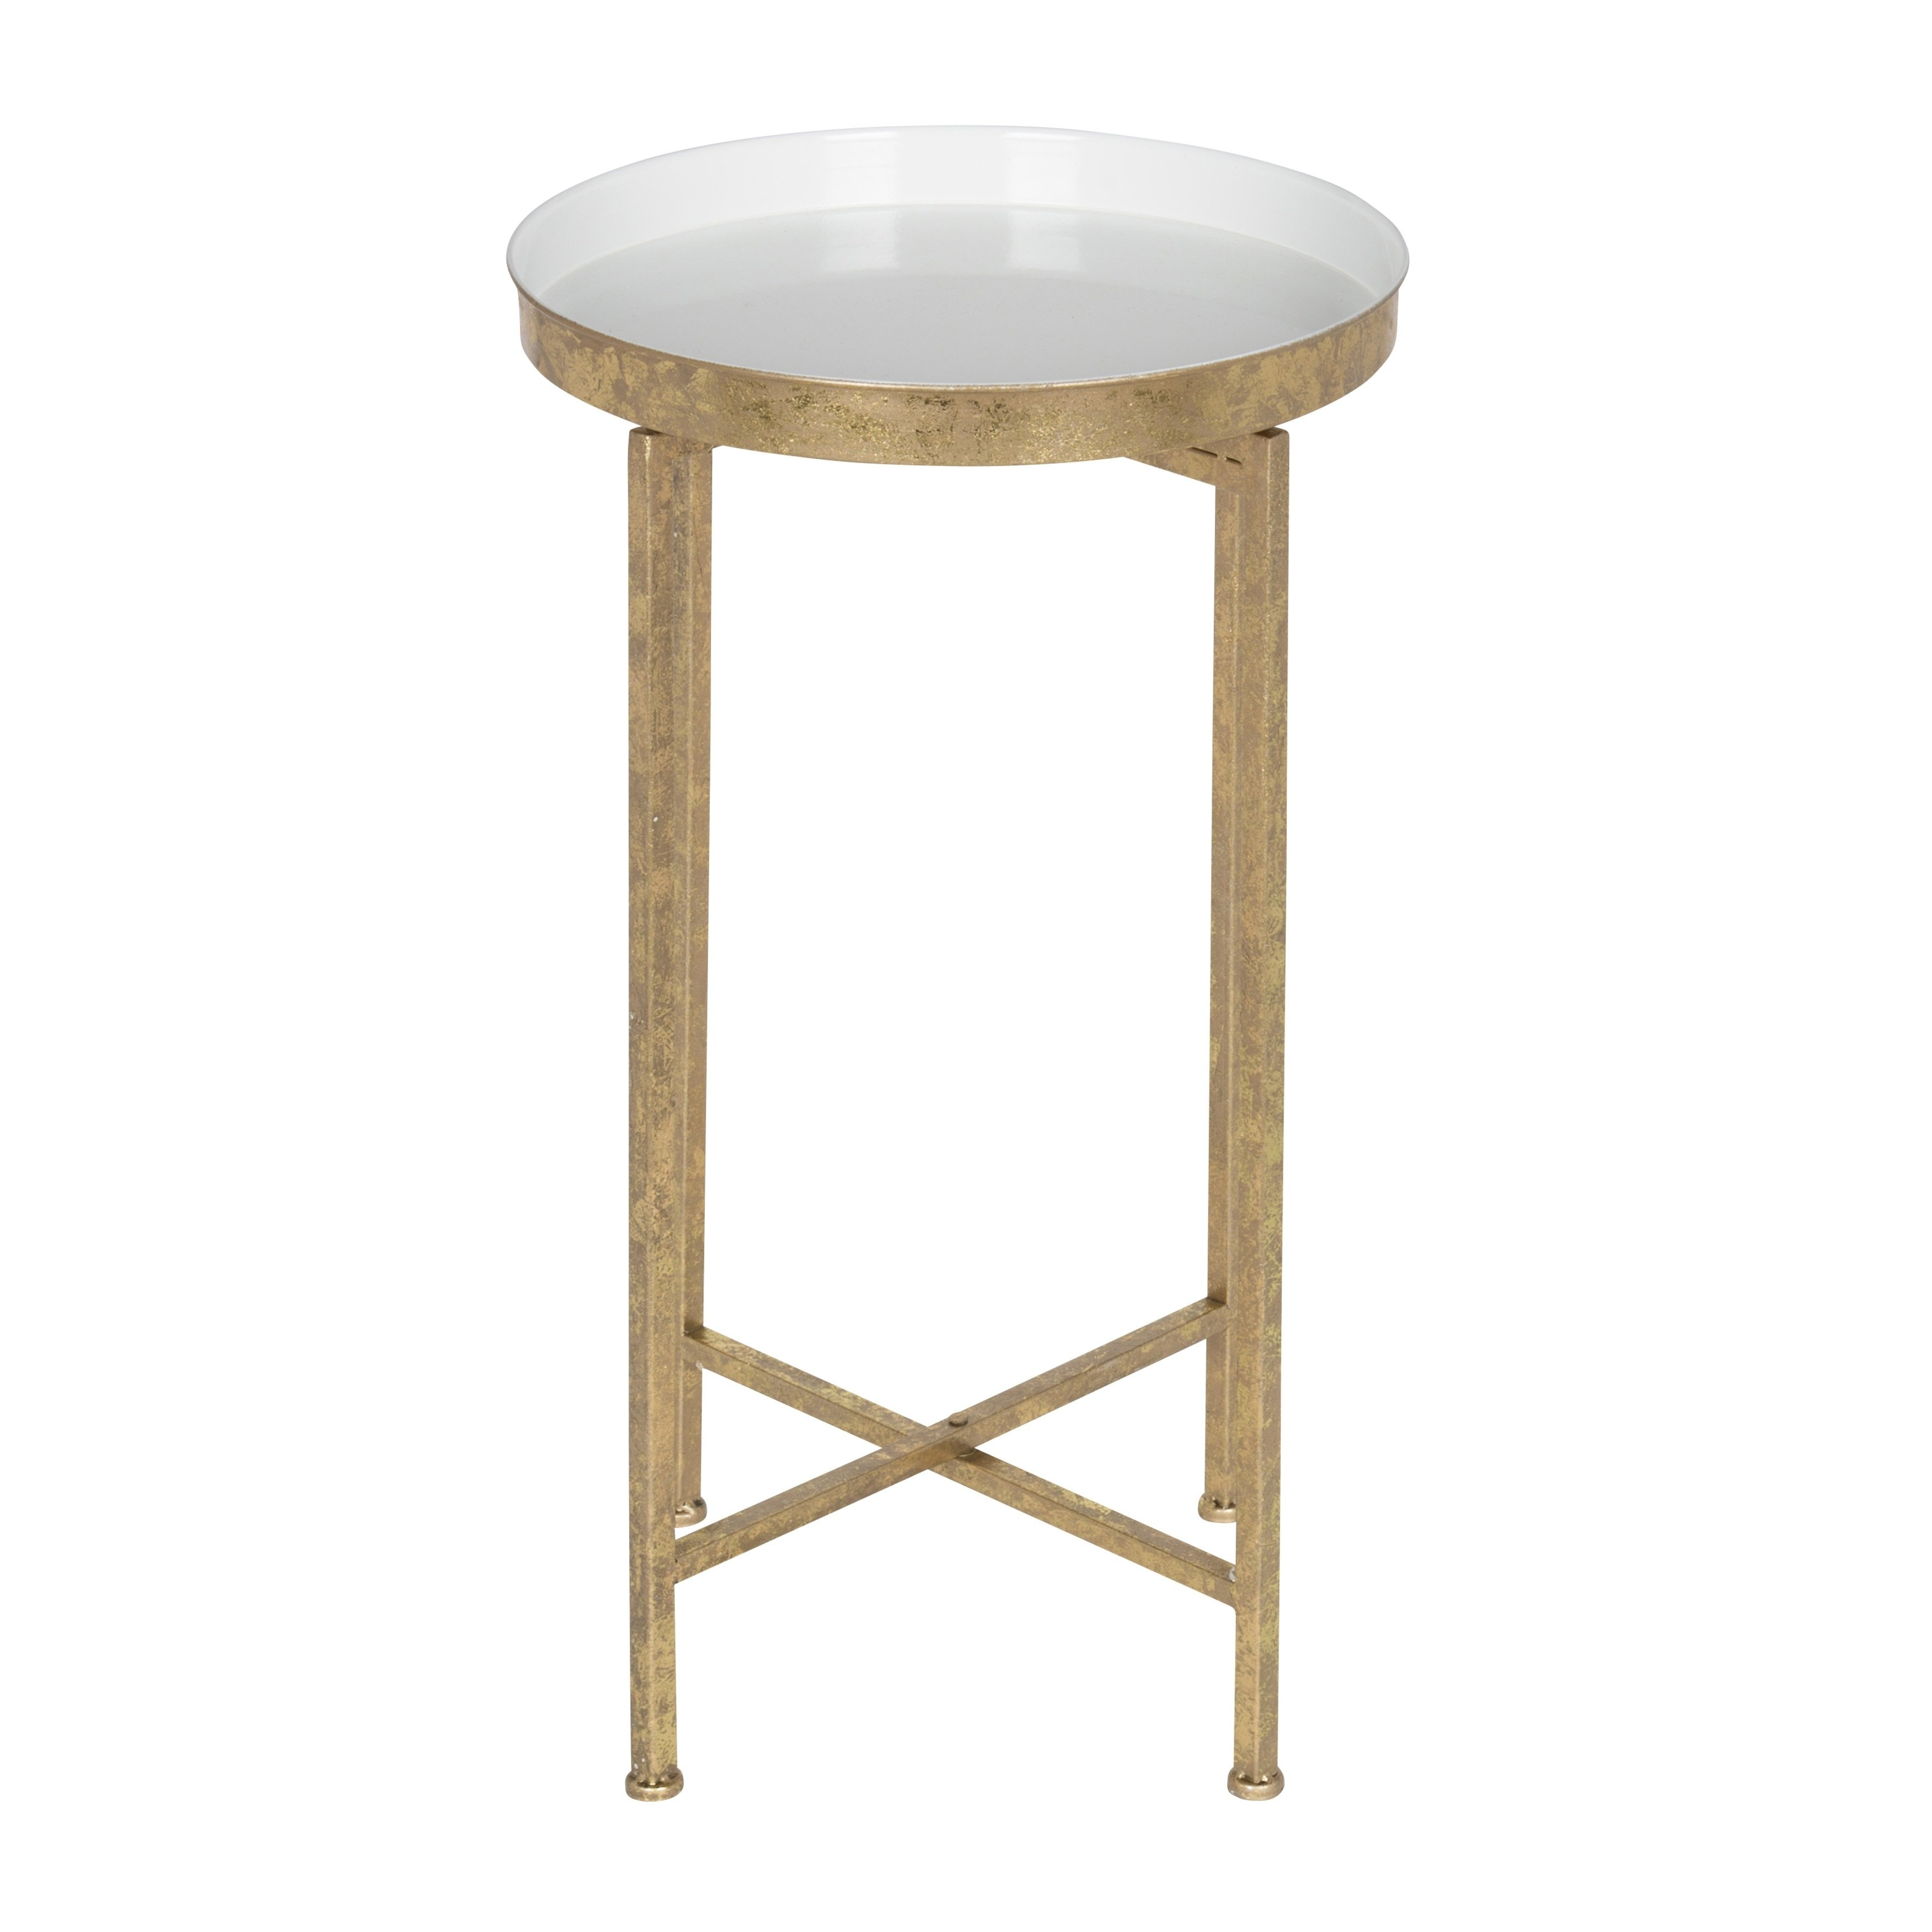 kate and laurel celia round metal foldable tray accent table cardboard free shipping today stone top coffee sets high bar usb port side cover ethan allen fabrics all weather patio